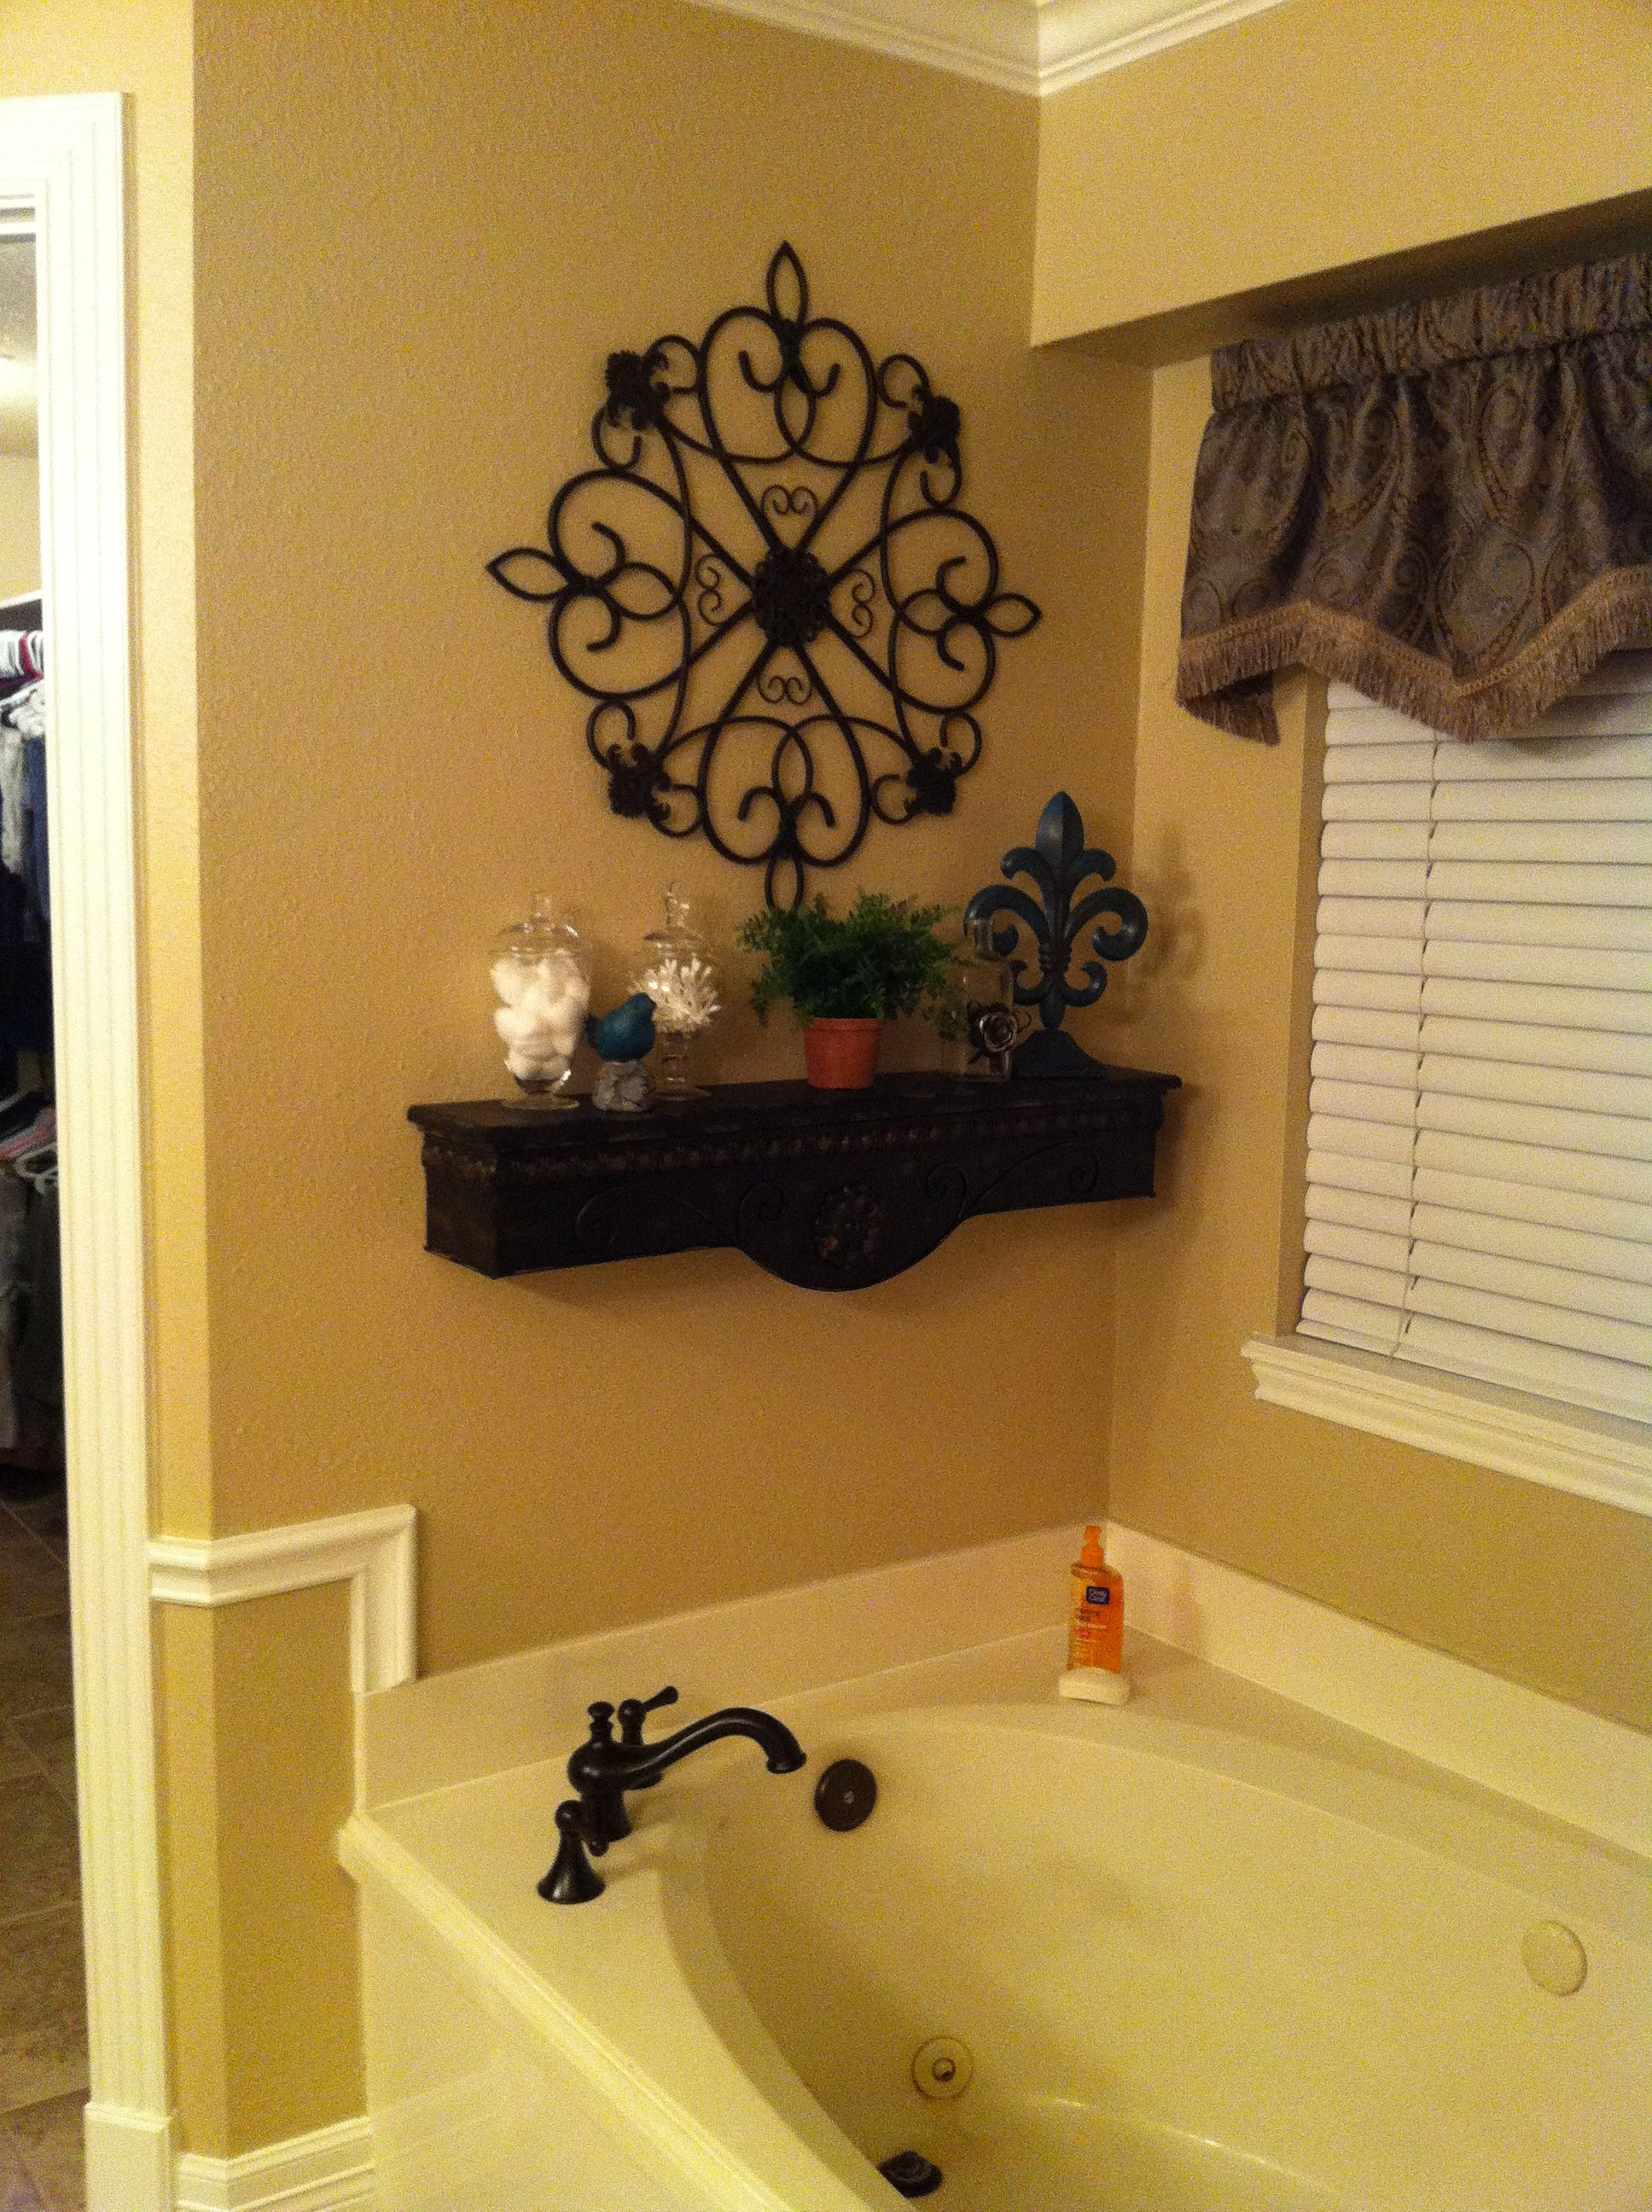 Decorative shelf above bath tub